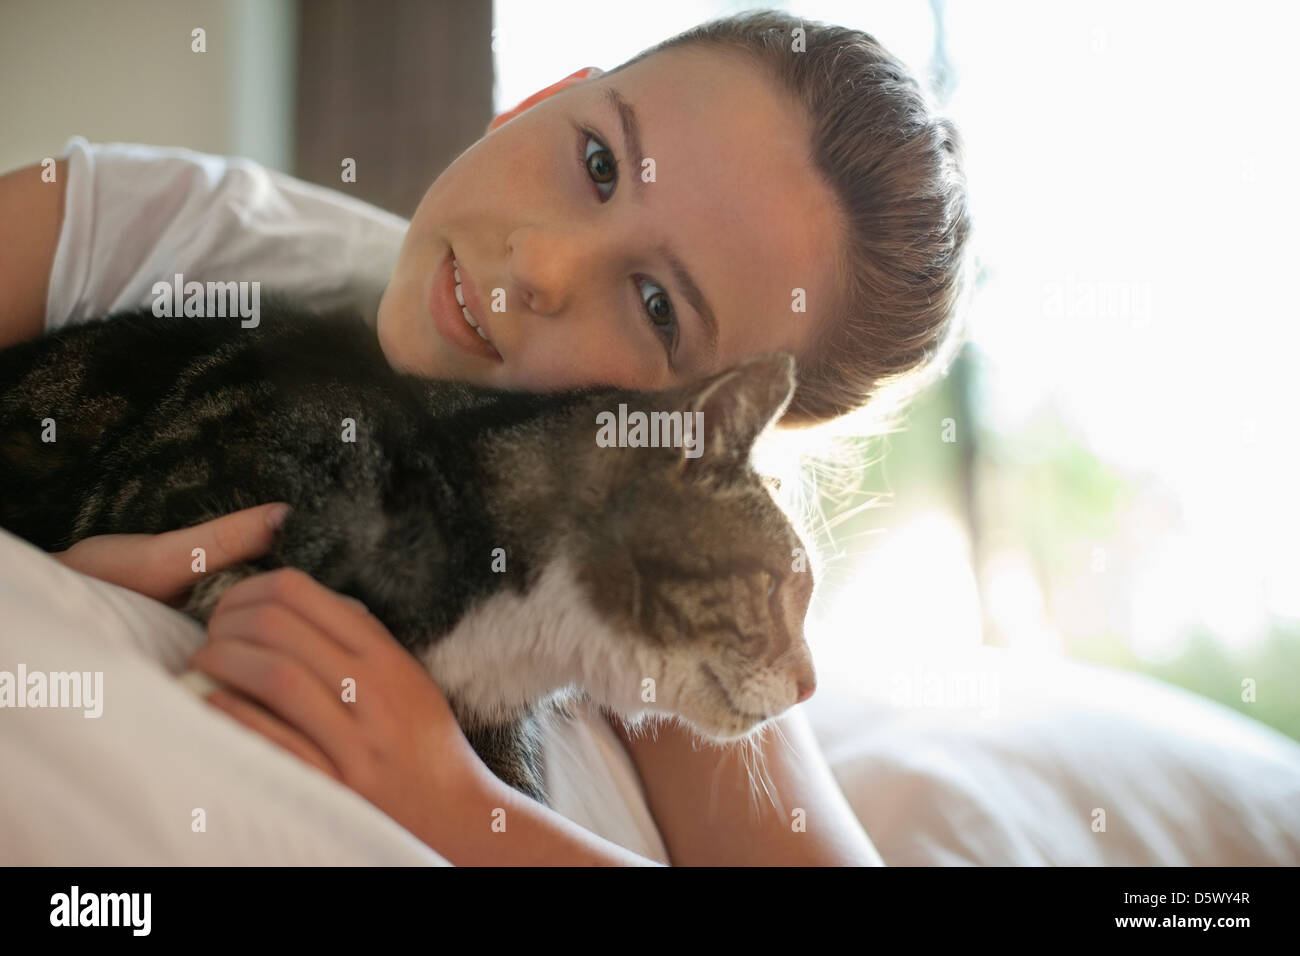 Girl petting cat on bed - Stock Image